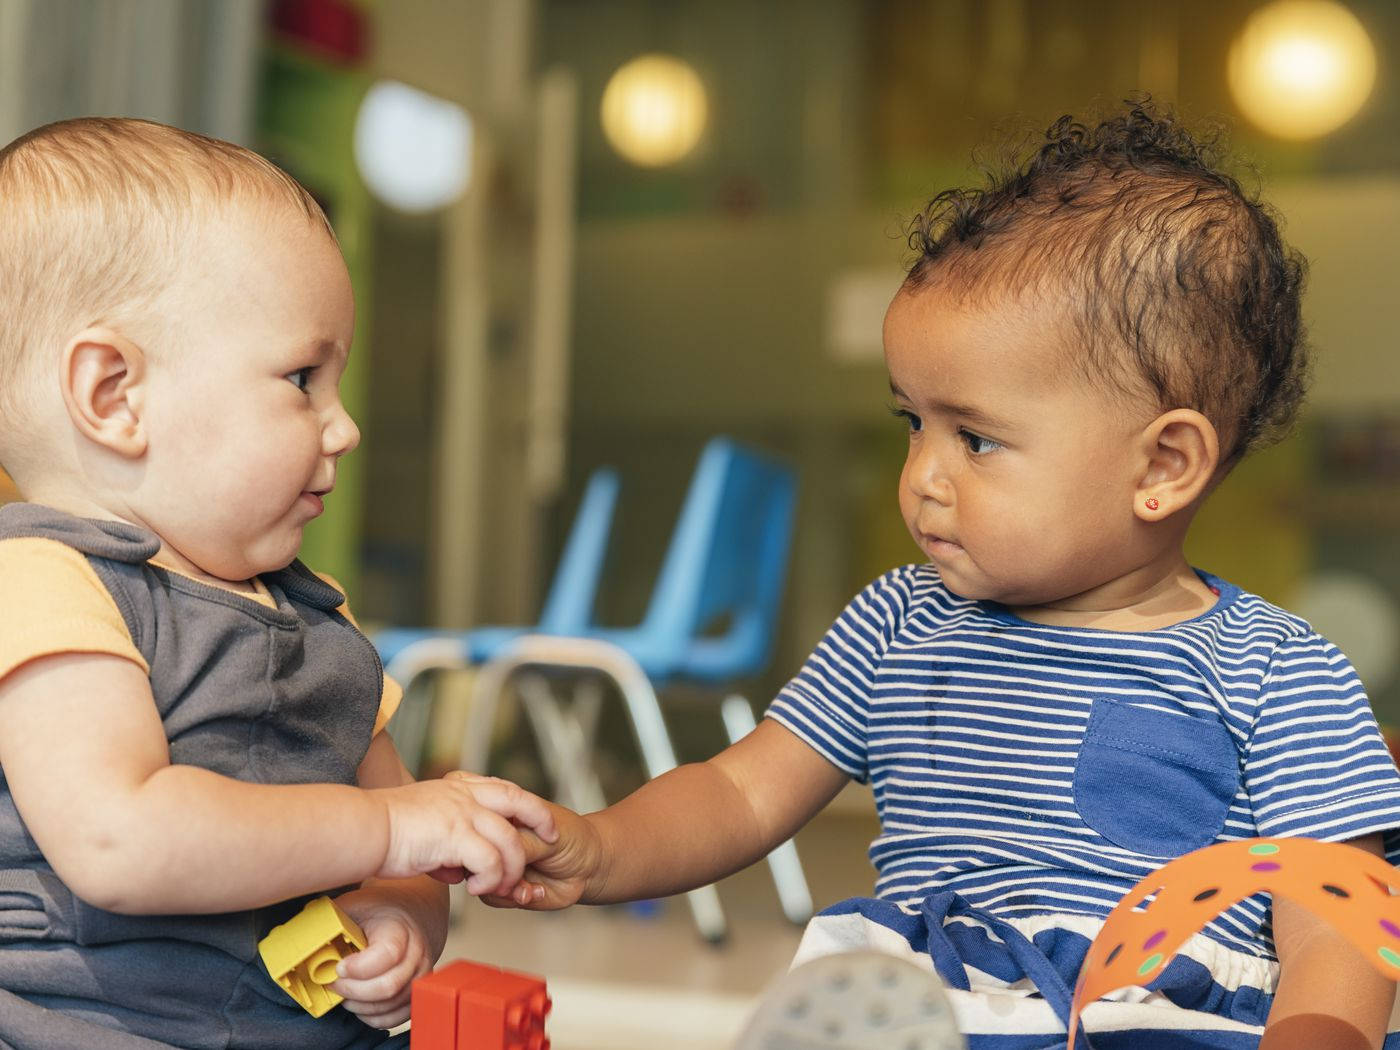 Altruistic Babies Psychology Study Shows Altruism May Begin In Infancy Vox